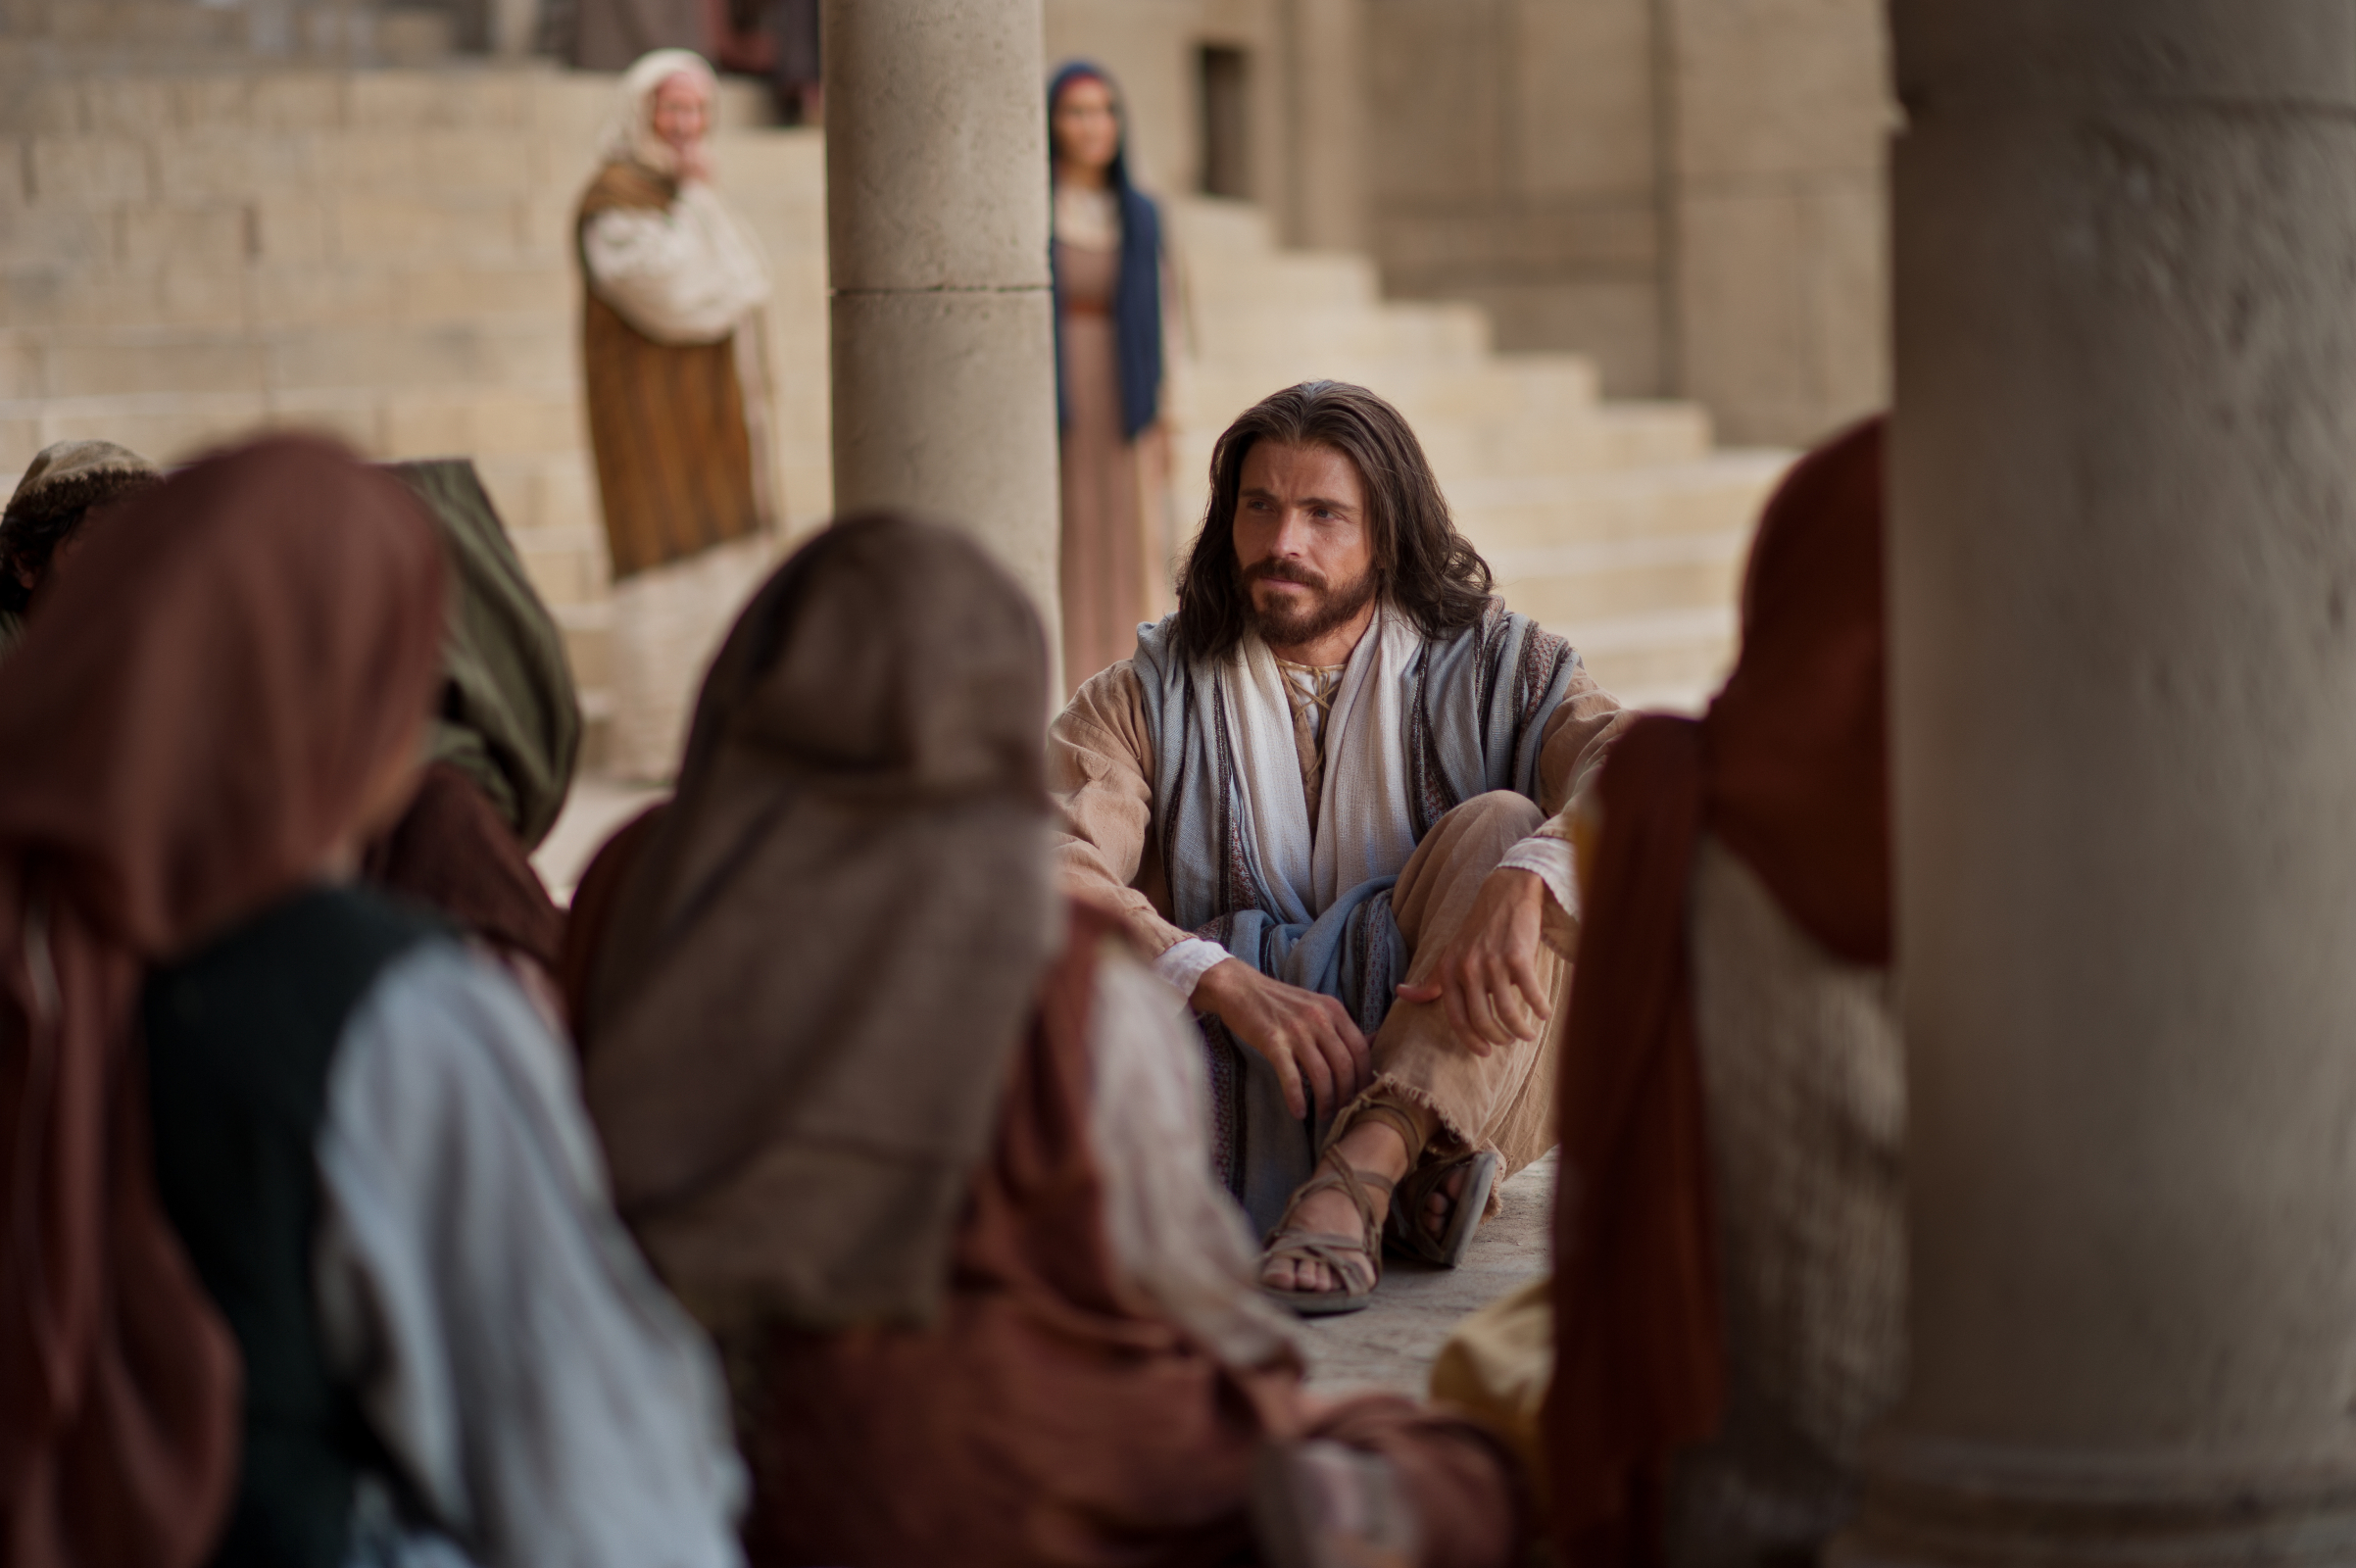 Christ teaches a group of people in an image from the Church's Bible videos.